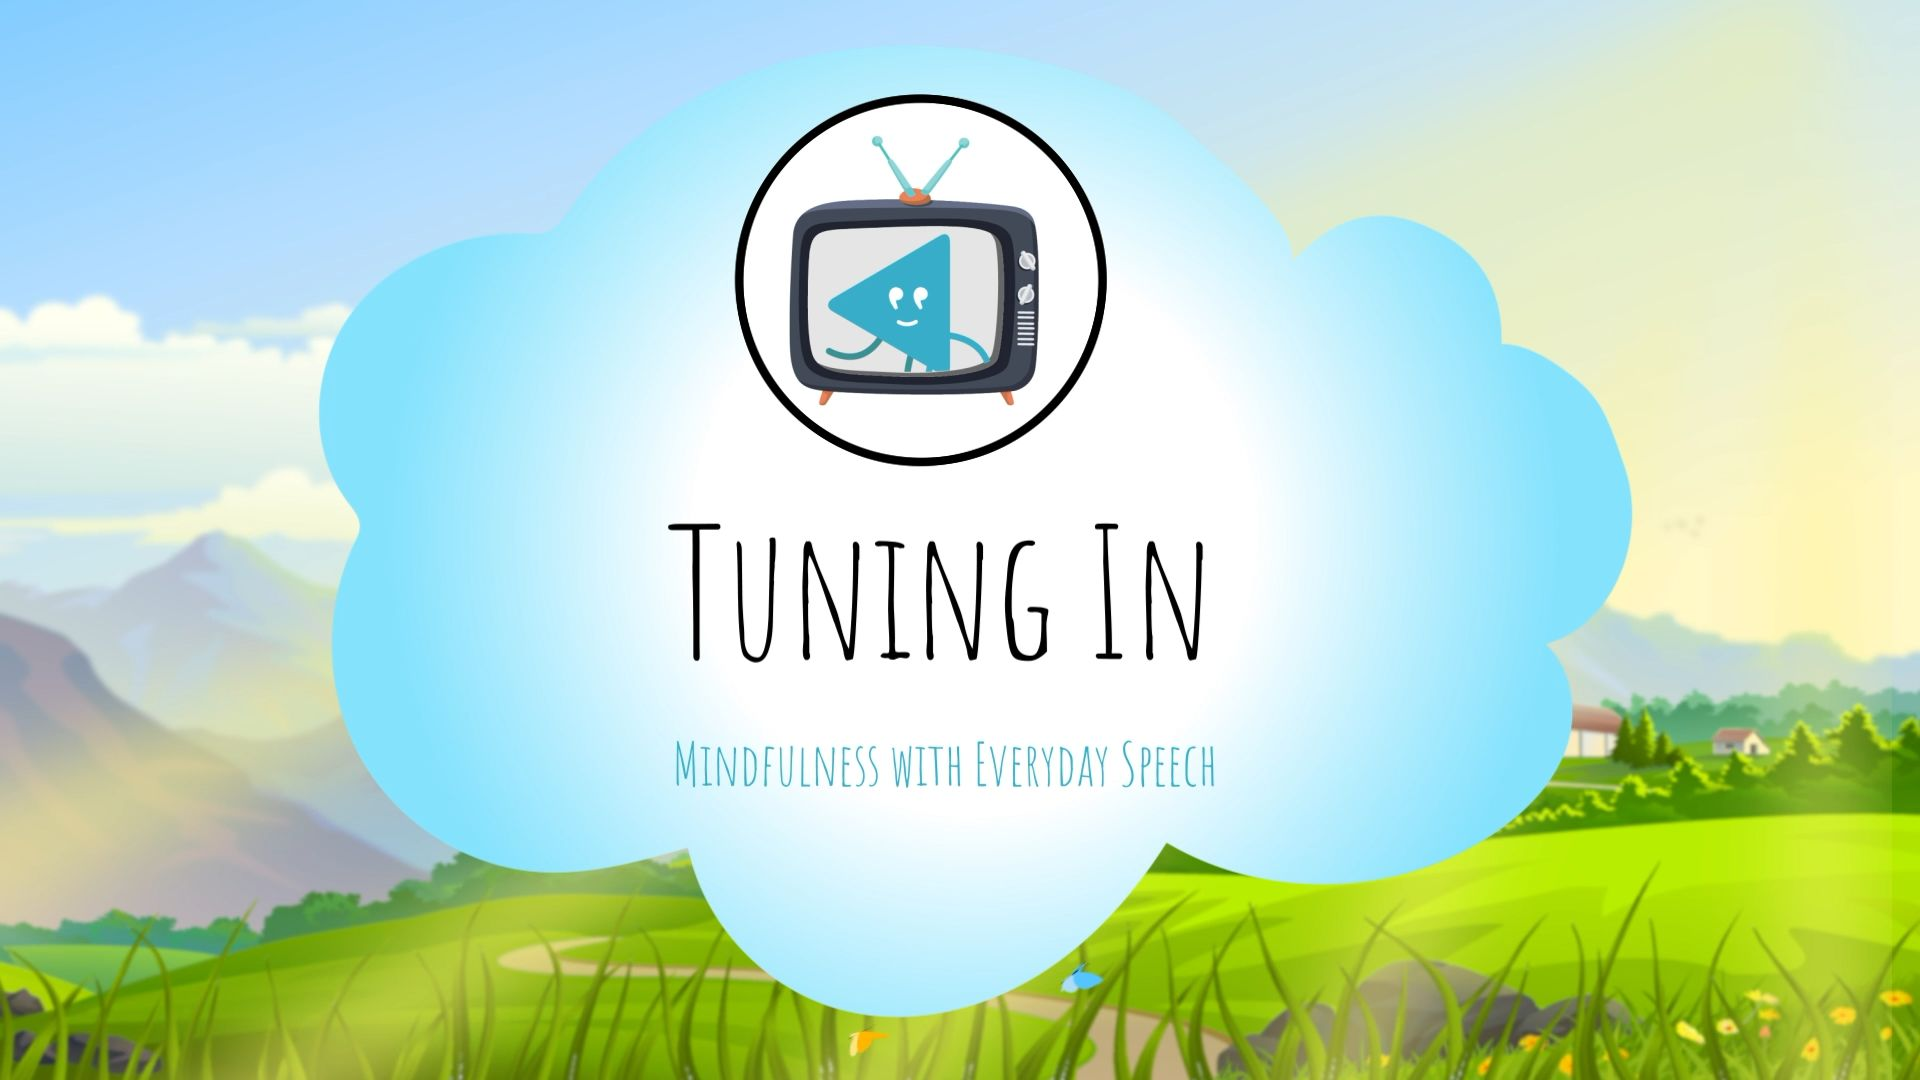 Tuning In